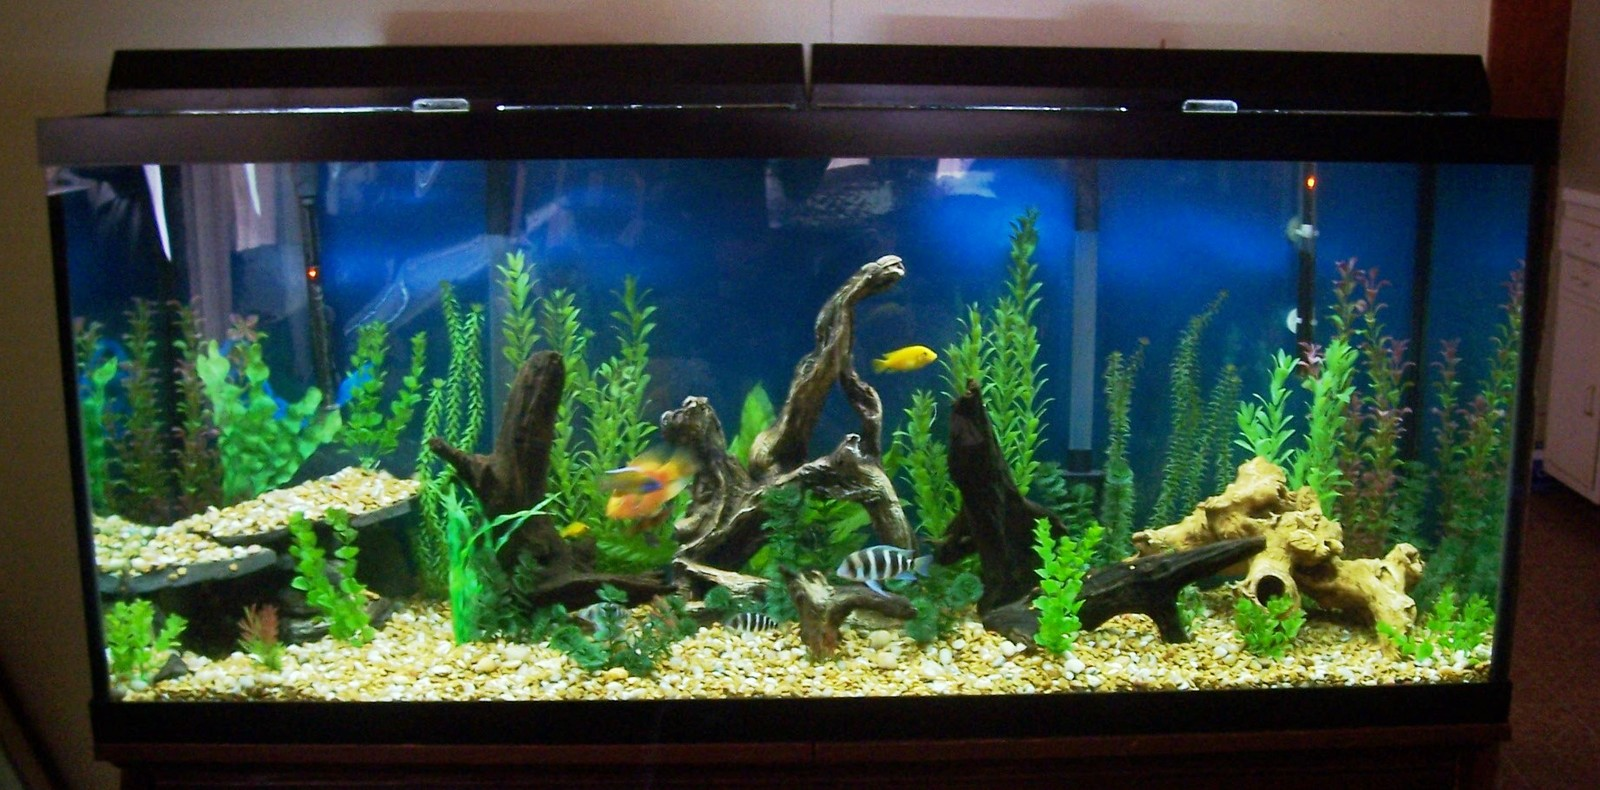 120 gallon African tank | by steve barker